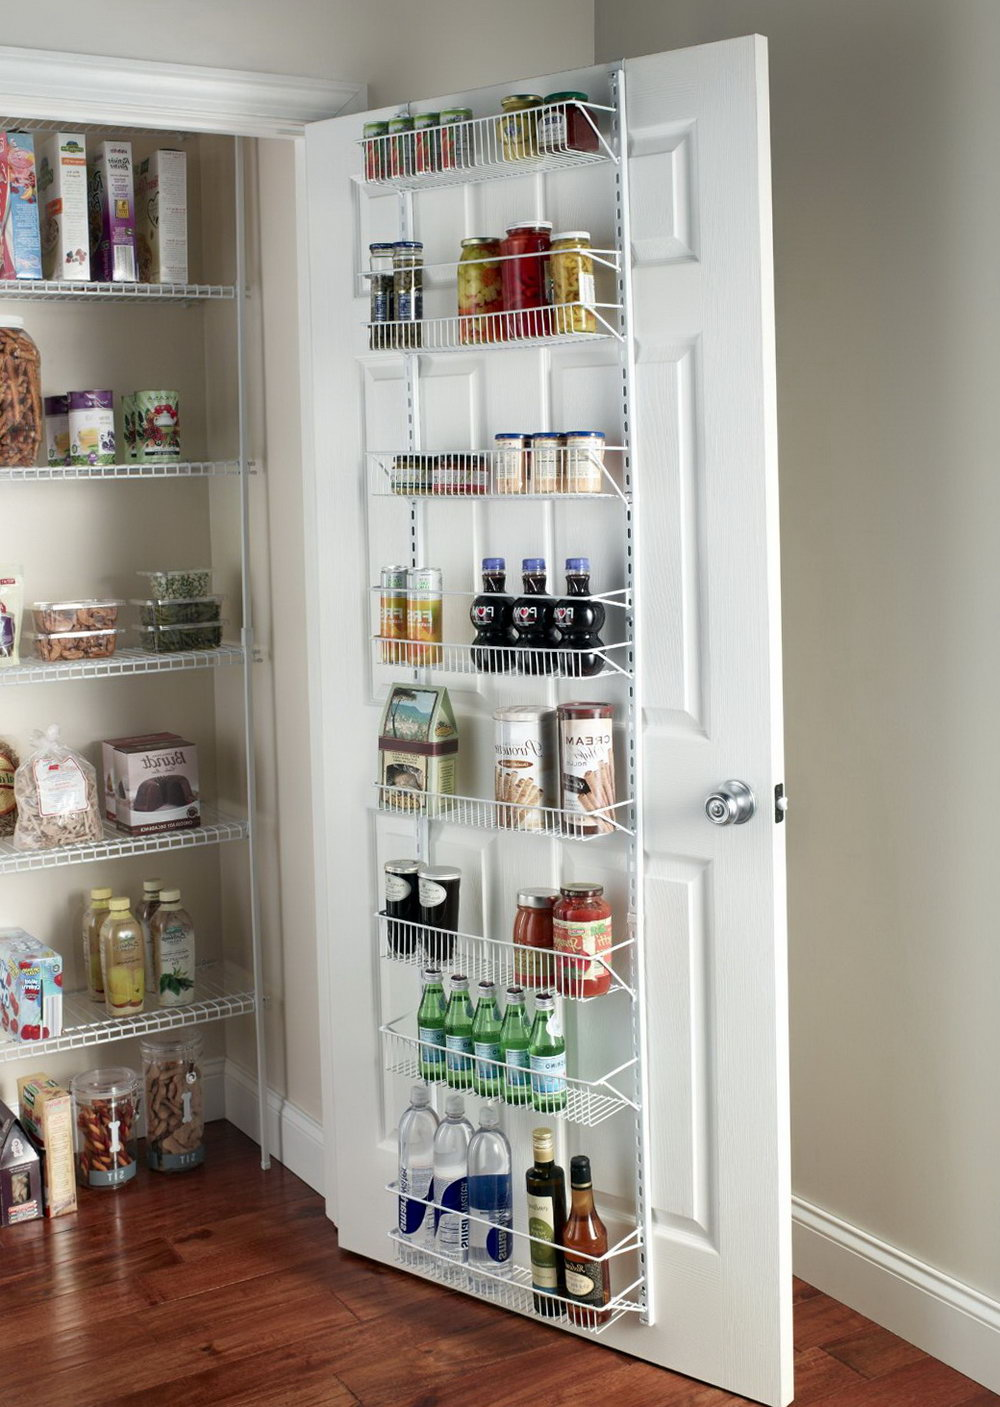 Pantry Door Spice Rack Organizer